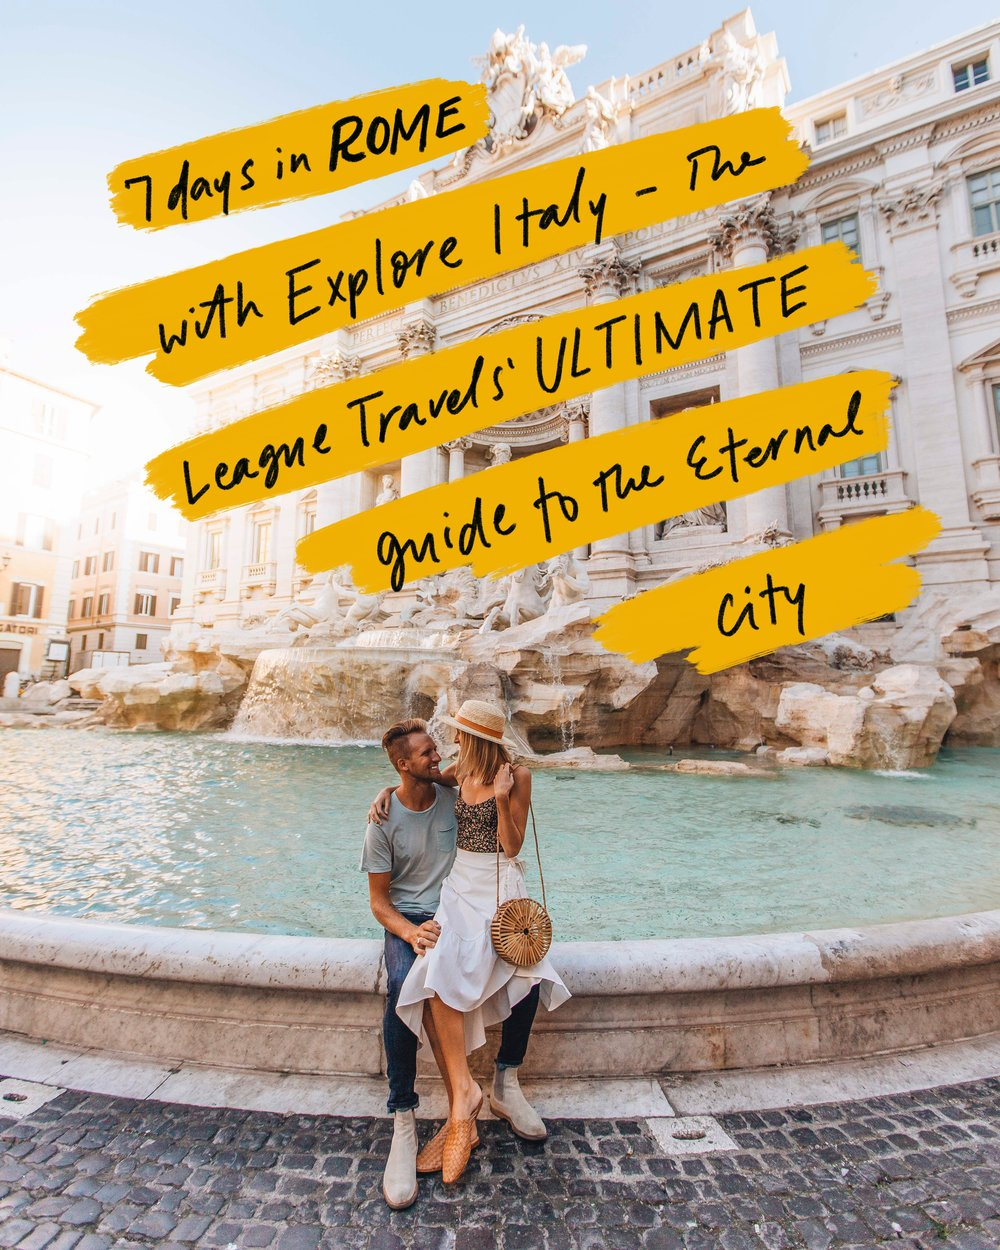 League Travels' Ultimate Rome Italy Travel Guide